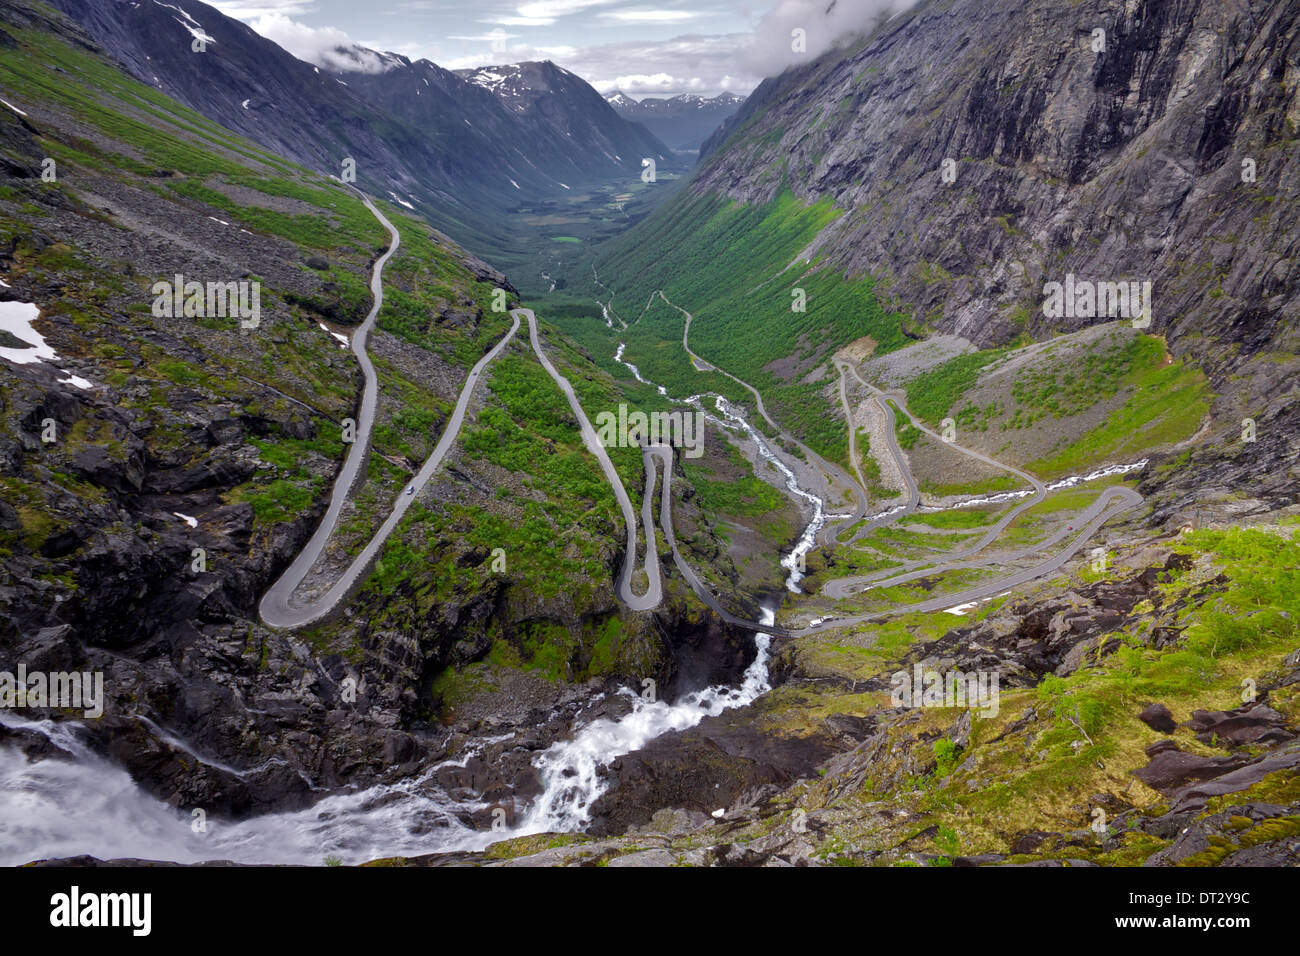 One of the most dramatic mountain passes in the world, Trollstigen in Norway - Stock Image